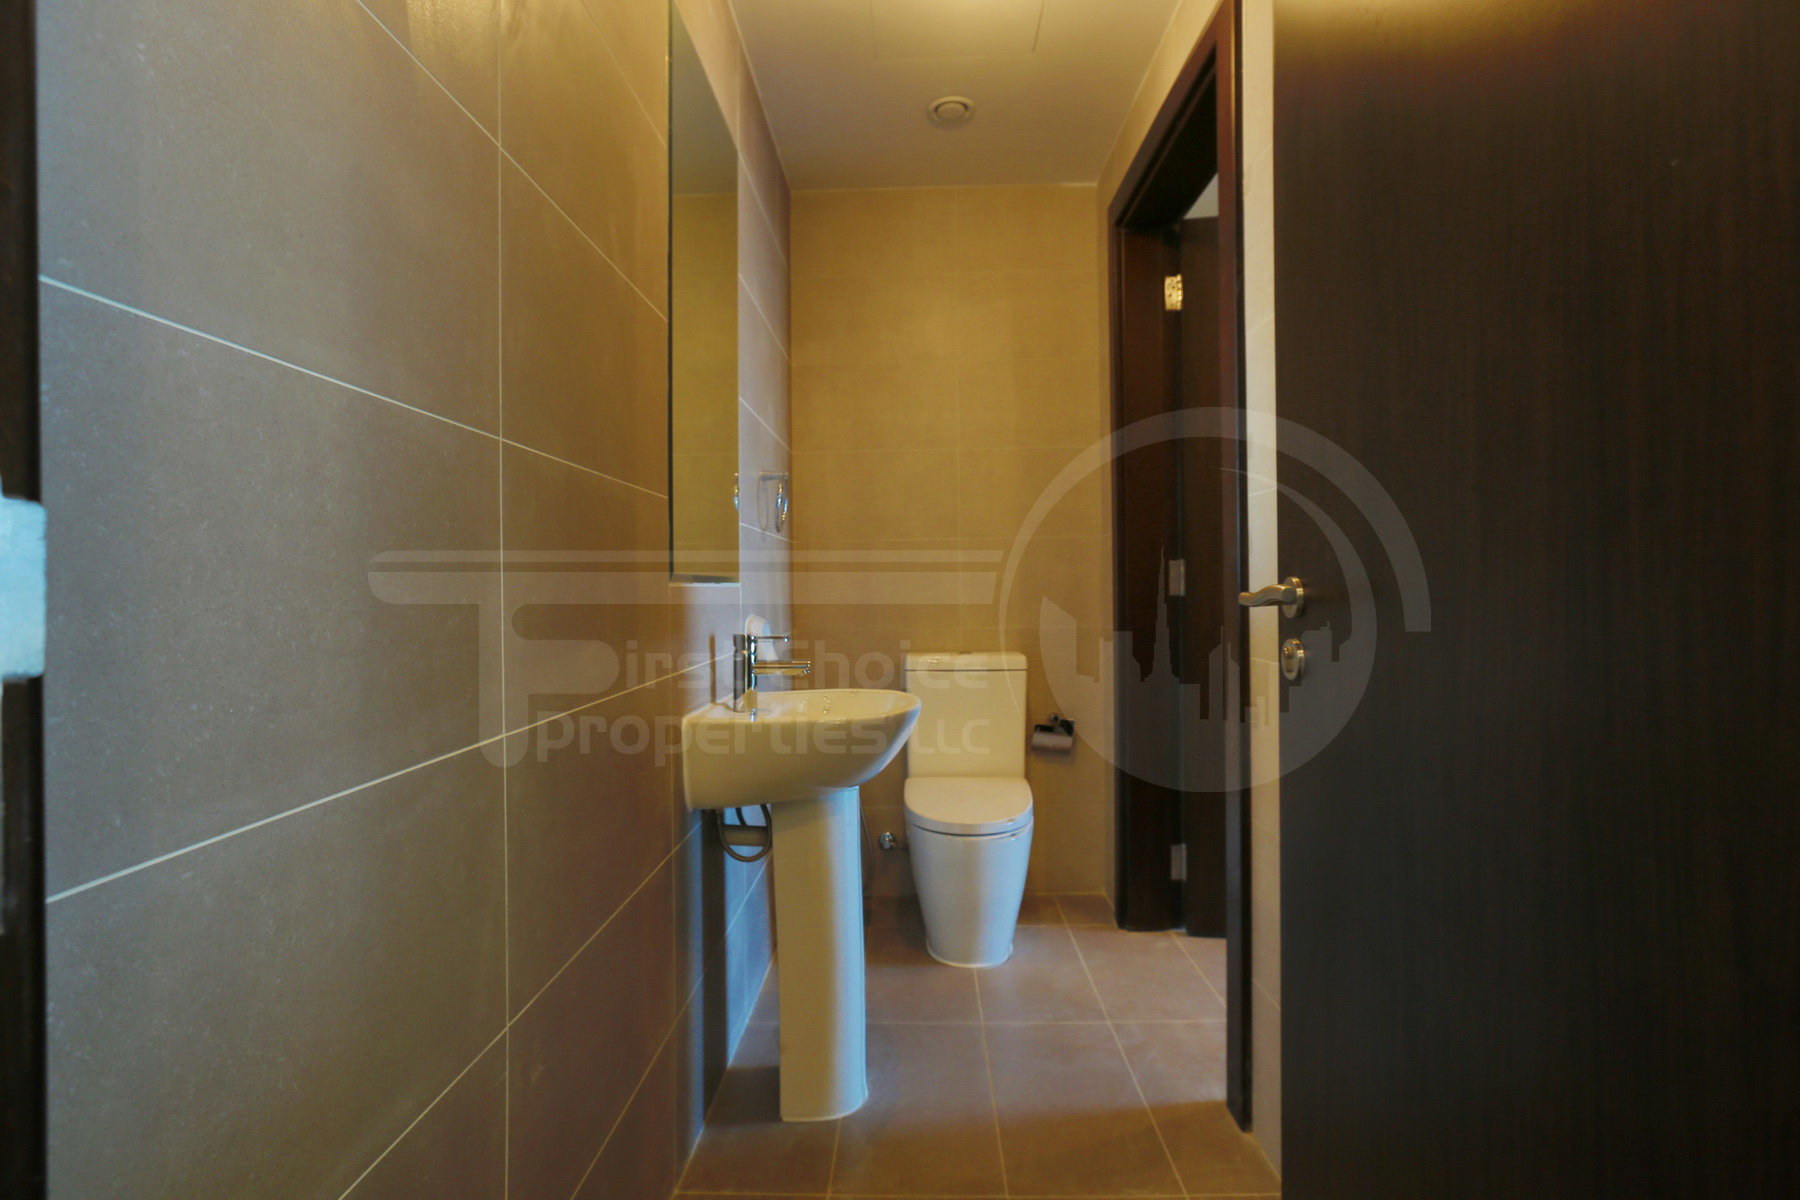 1BR Apartment - Abu Dhabi - UAE - Al Reem Island - City of Lights - C10 Building (2).JPG